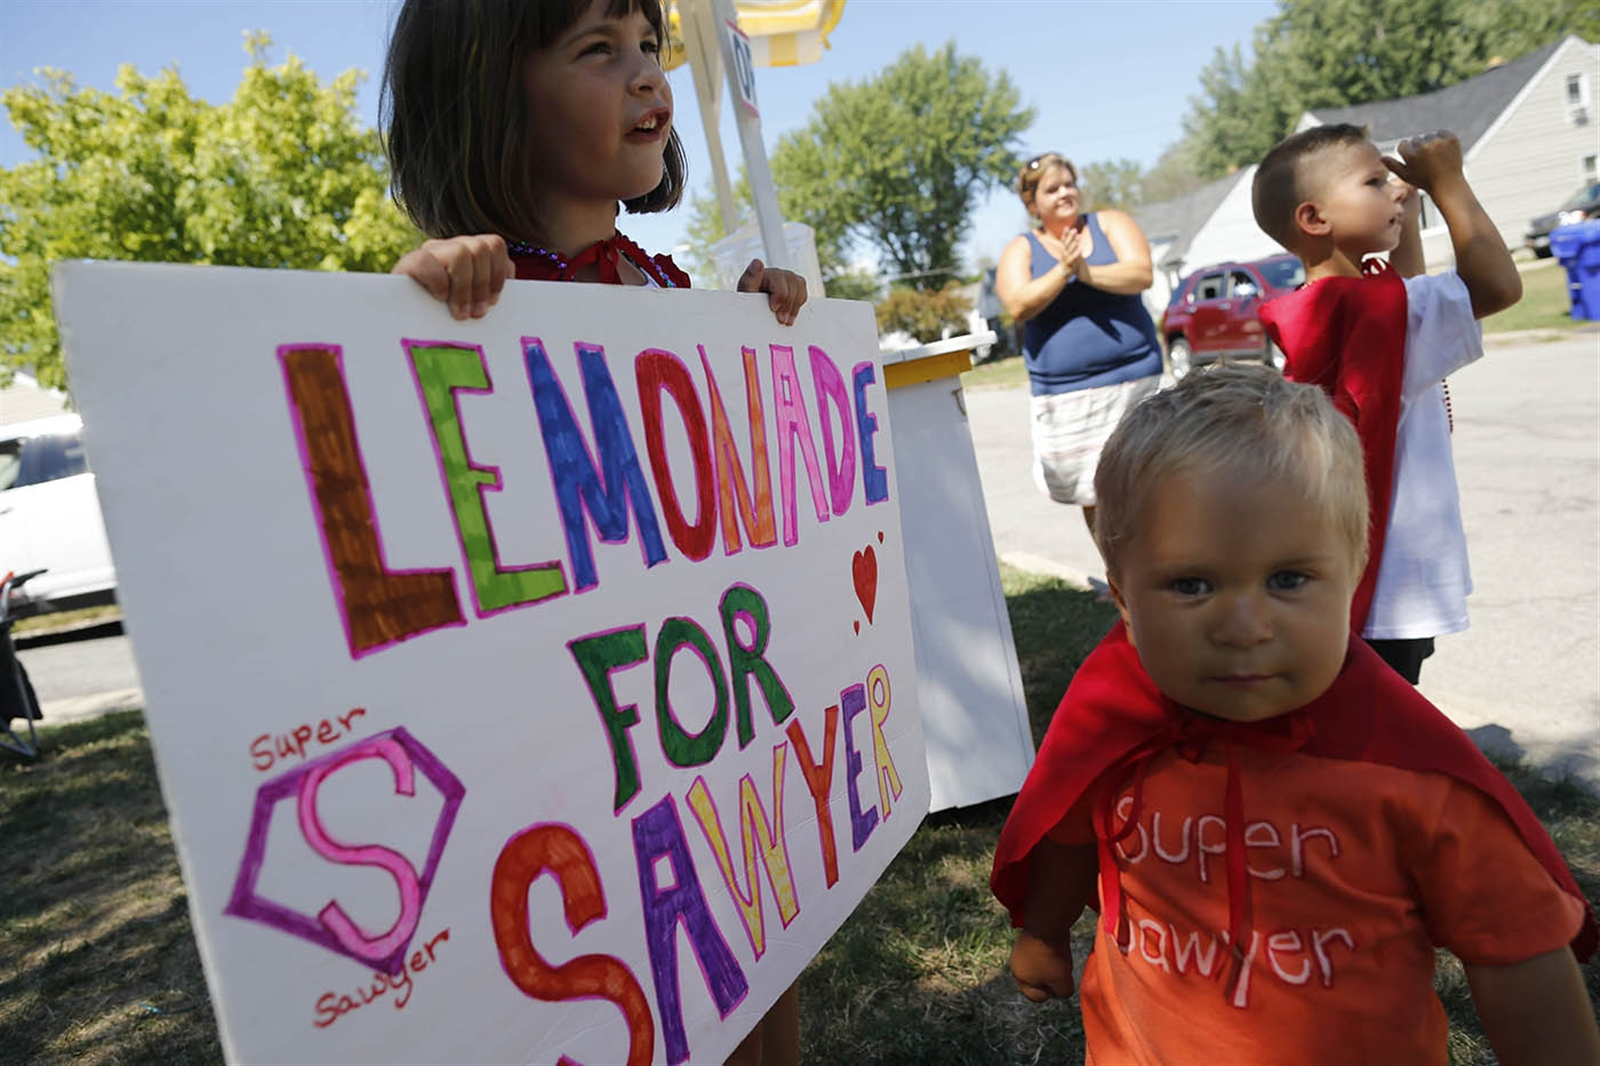 From left, Disney Schunk, 6, Jace Schunk, 3, and Johnathan Dearing, 6, with help from their mom, Heather Schunk, background) run a lemonade stand to raise money for a family friend with brain cancer outside their home on Warren Avenue in West Seneca, Thursday, Aug. 4, 2016.  Sawyer Perkins, 6, a West Seneca native who now lives in Mechanicville, Va. is currently in treatment at St. Jude.  The fundraiser brought in $115 on Thursday and will run again on Sunday.  The kids will each pick out a present for Sawyer and send them along with the remainder of the money raised.